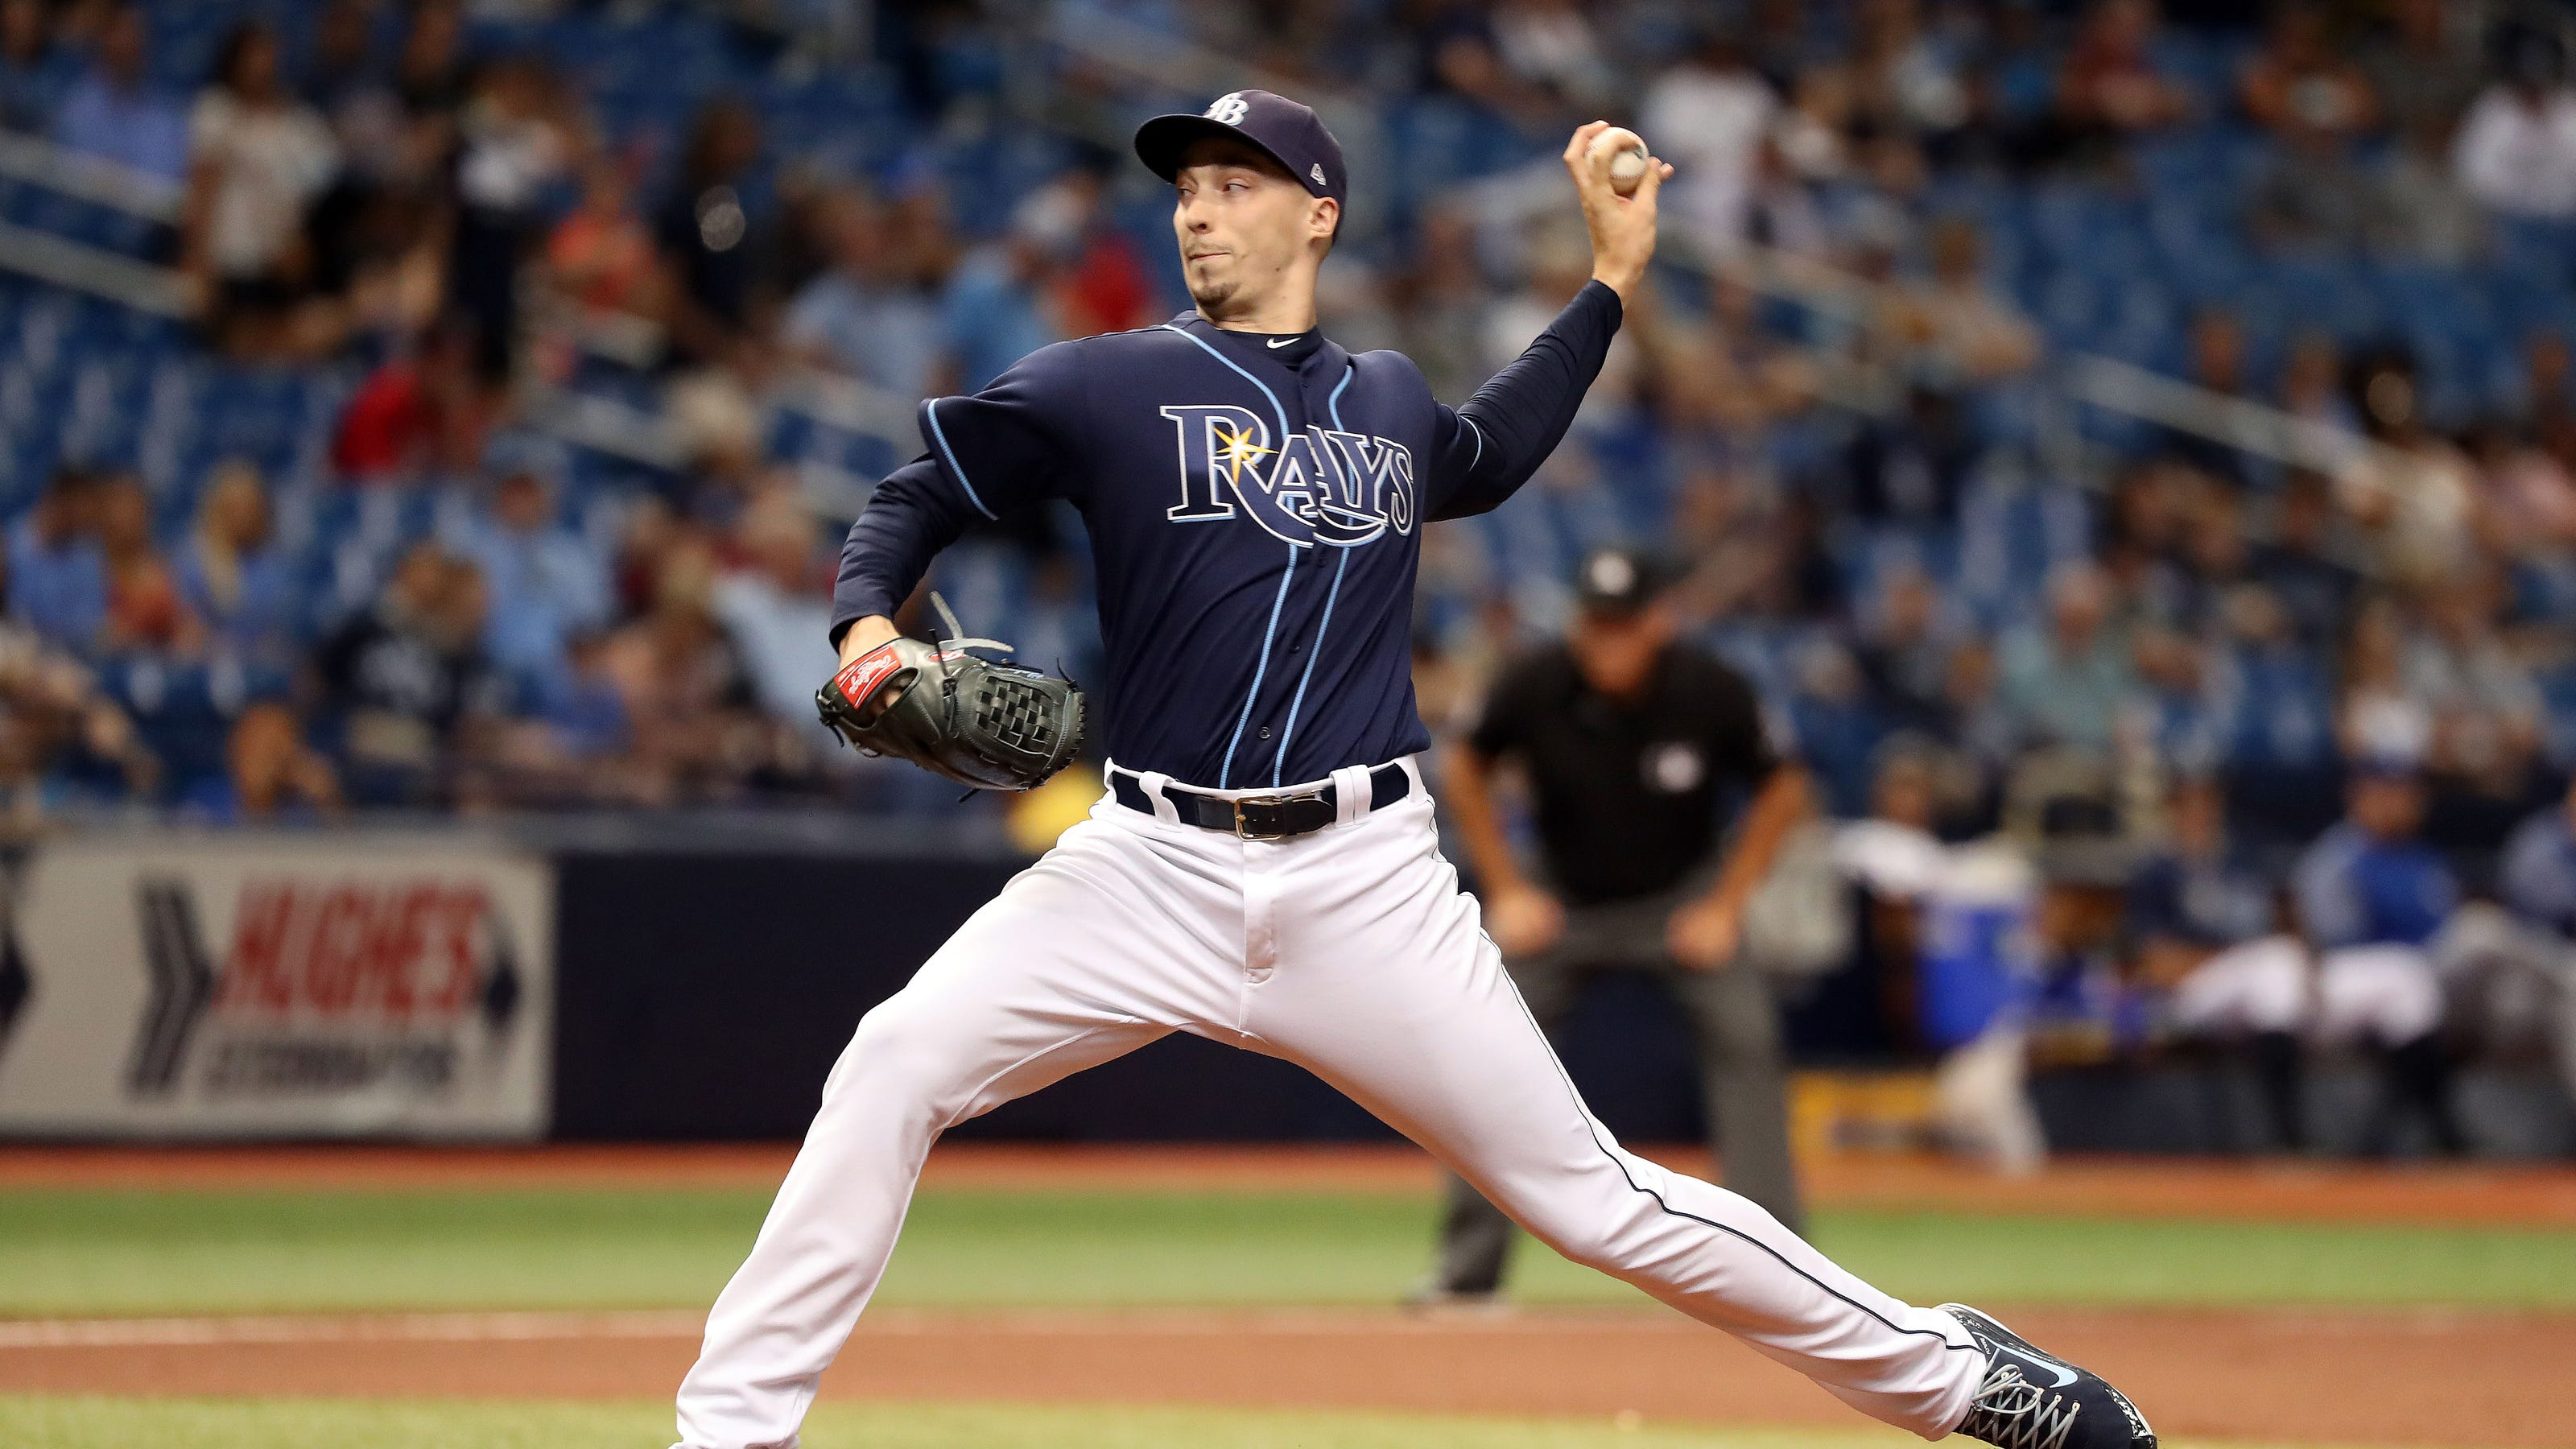 blake snell rays ace holds nothing back it s violently personal blake snell rays ace holds nothing